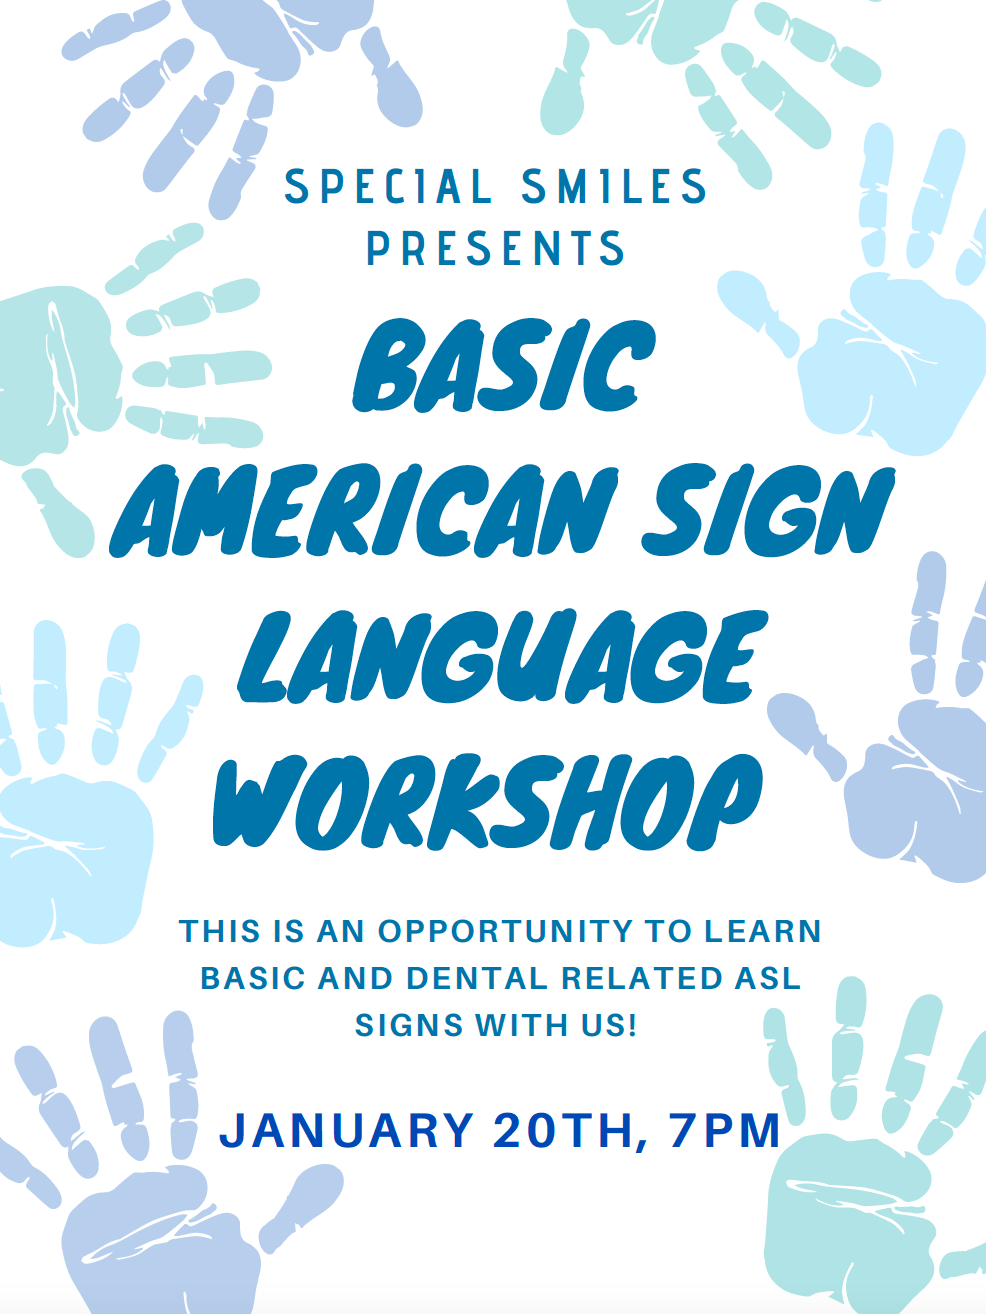 ASL Workshop – Special Smiles